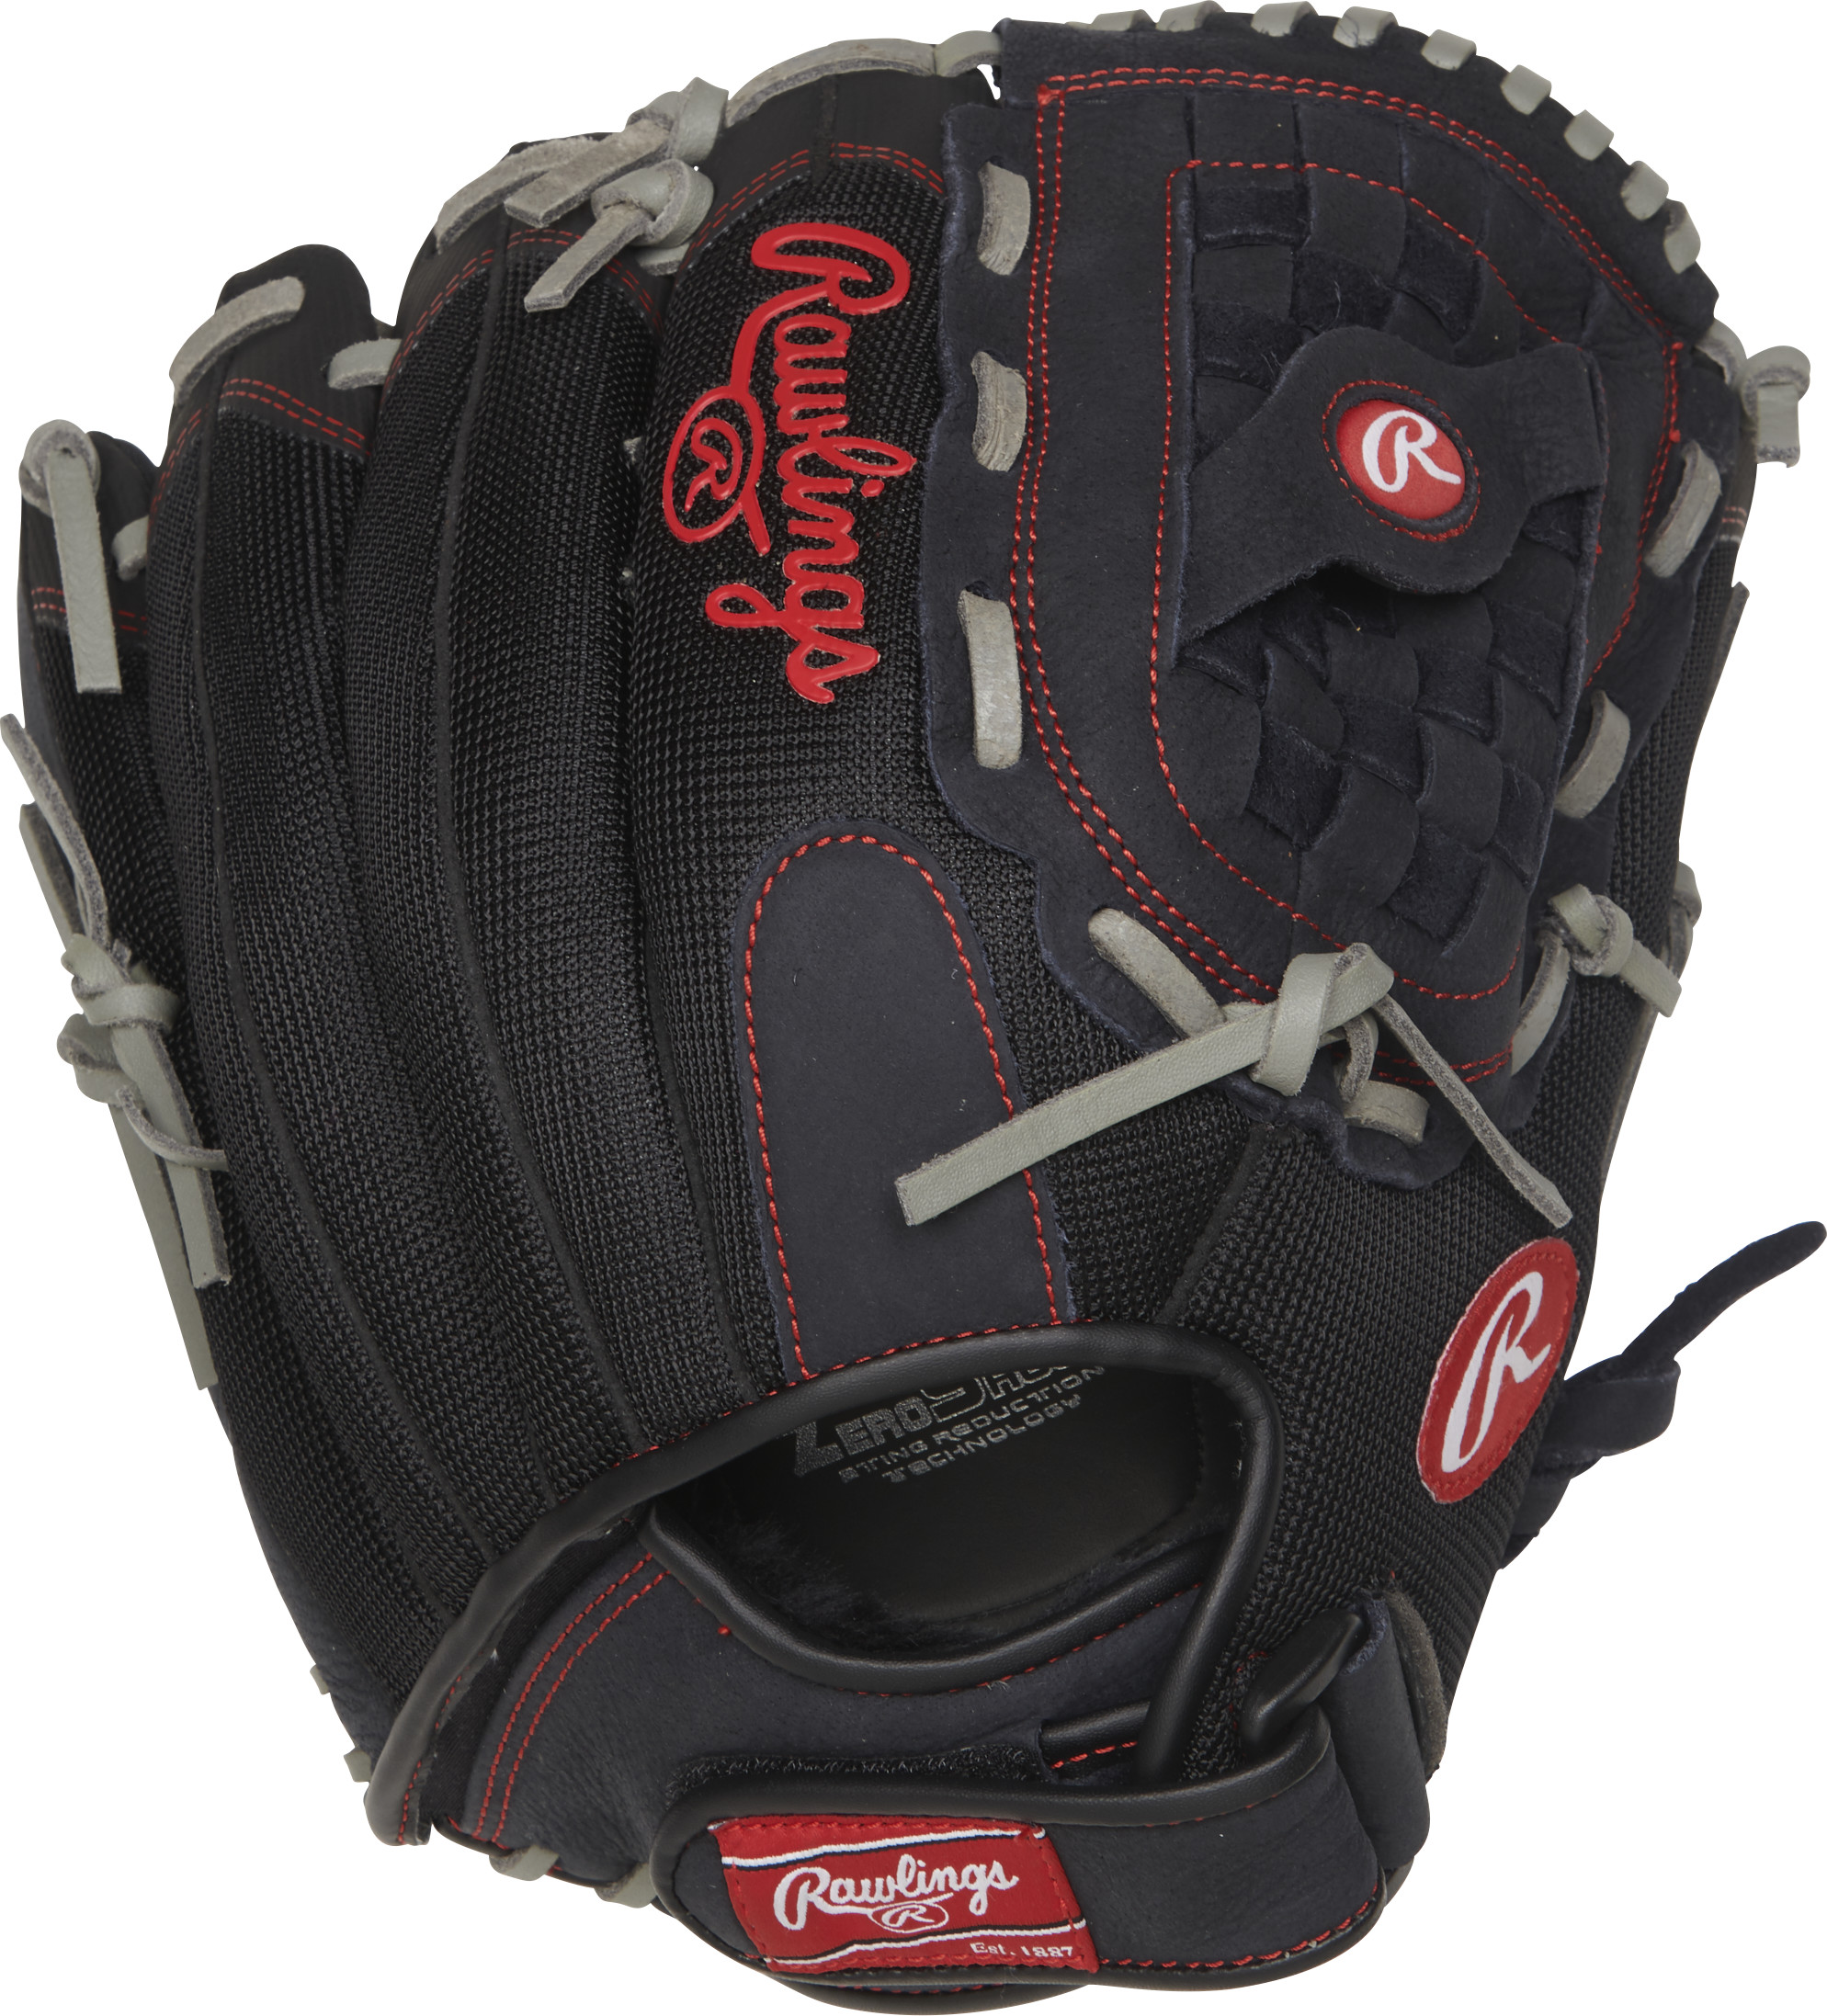 http://www.bestbatdeals.com/images/gloves/rawlings/R130BGS-2.jpg